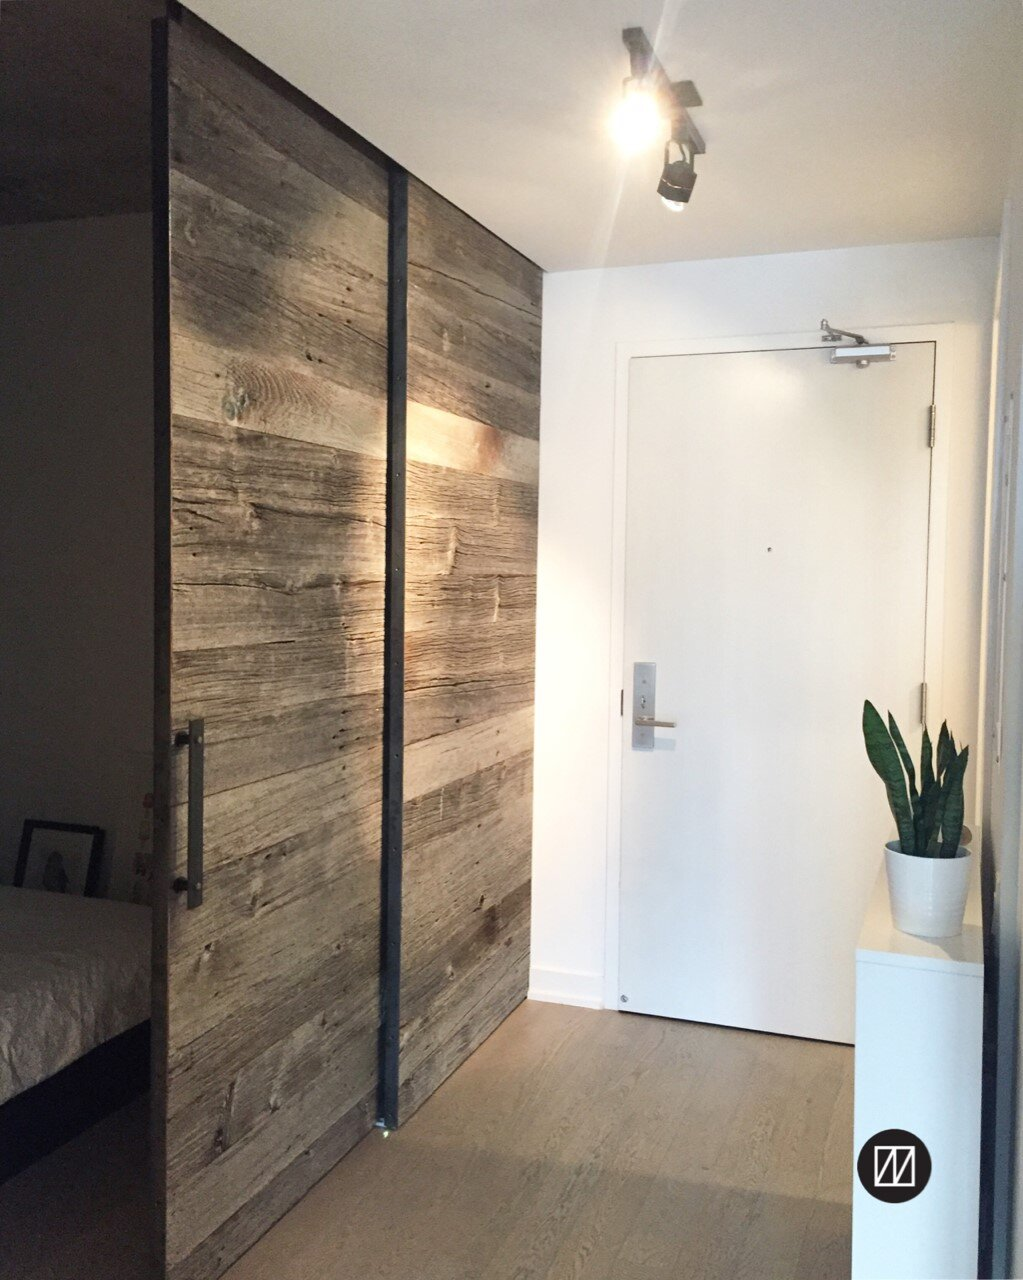 Condo bedroom: Our barn board sliding doors act as a wall to create a bedroom beyond (see on left).